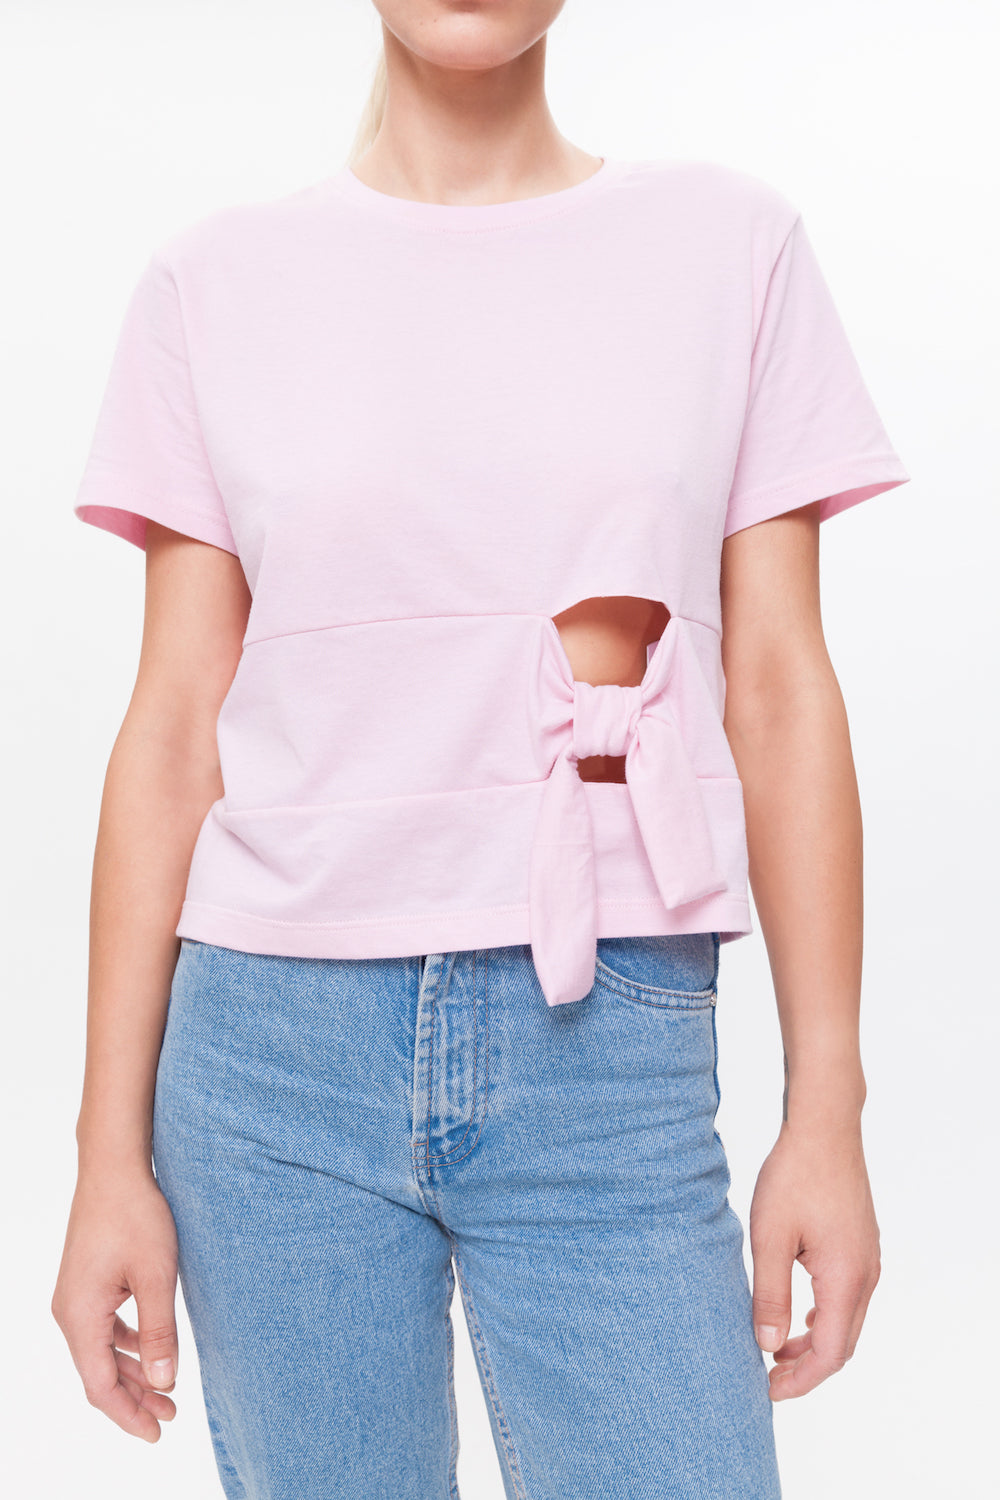 EDITH pink top